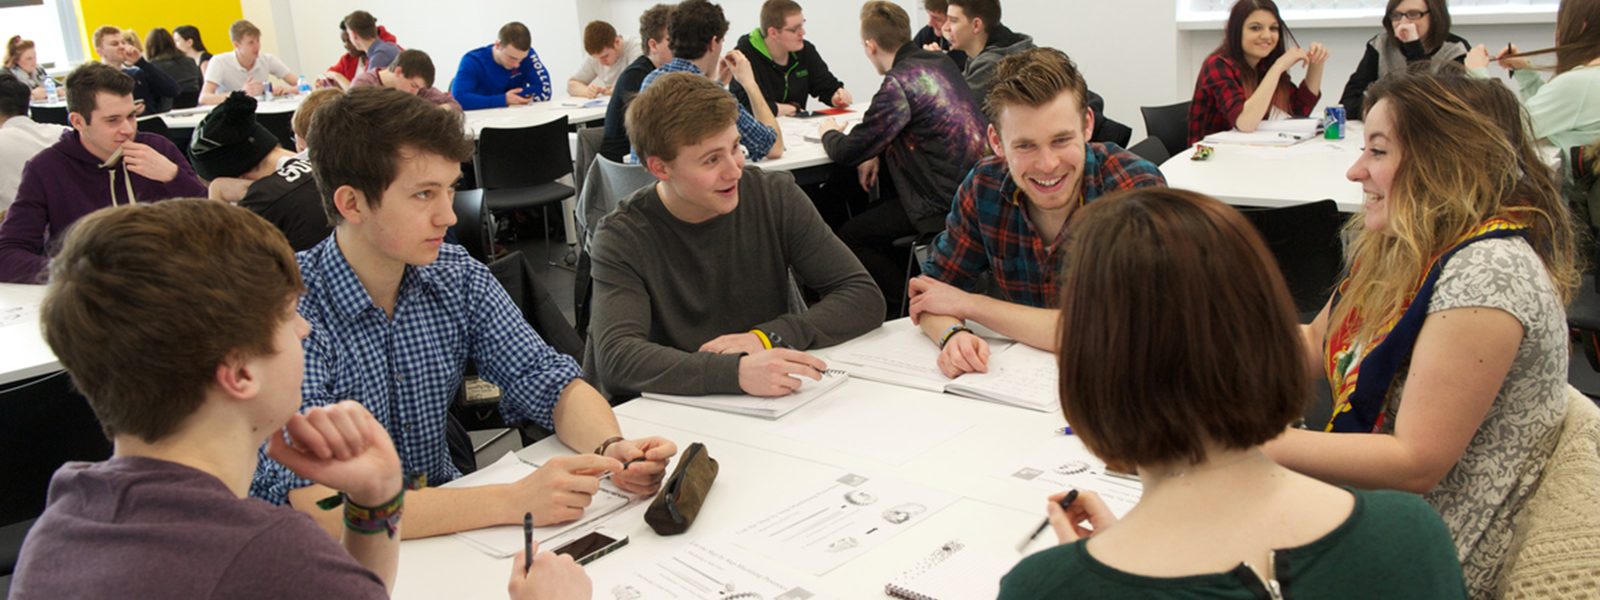 Students in a design workshop